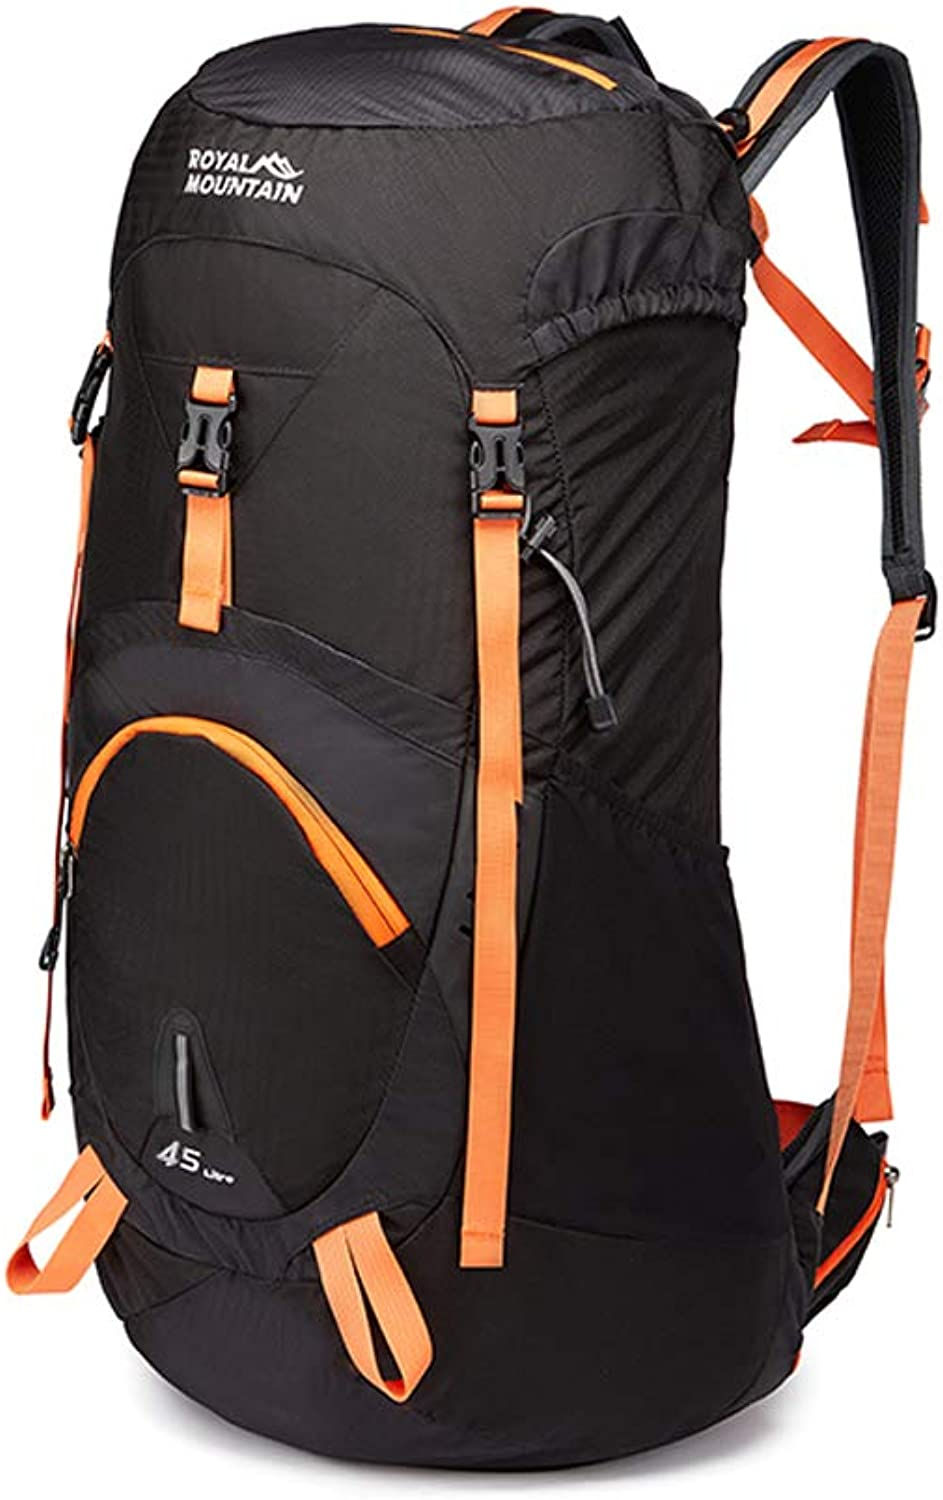 Outdoor Backpack 45L55L65L Outdoor Sports Backpack Camping Hiking Waterproof Backpack Mountaineering Bag with Rain Cover Travel Hiking HBJP (color   Black, Size   77cm×35cm×22cm)